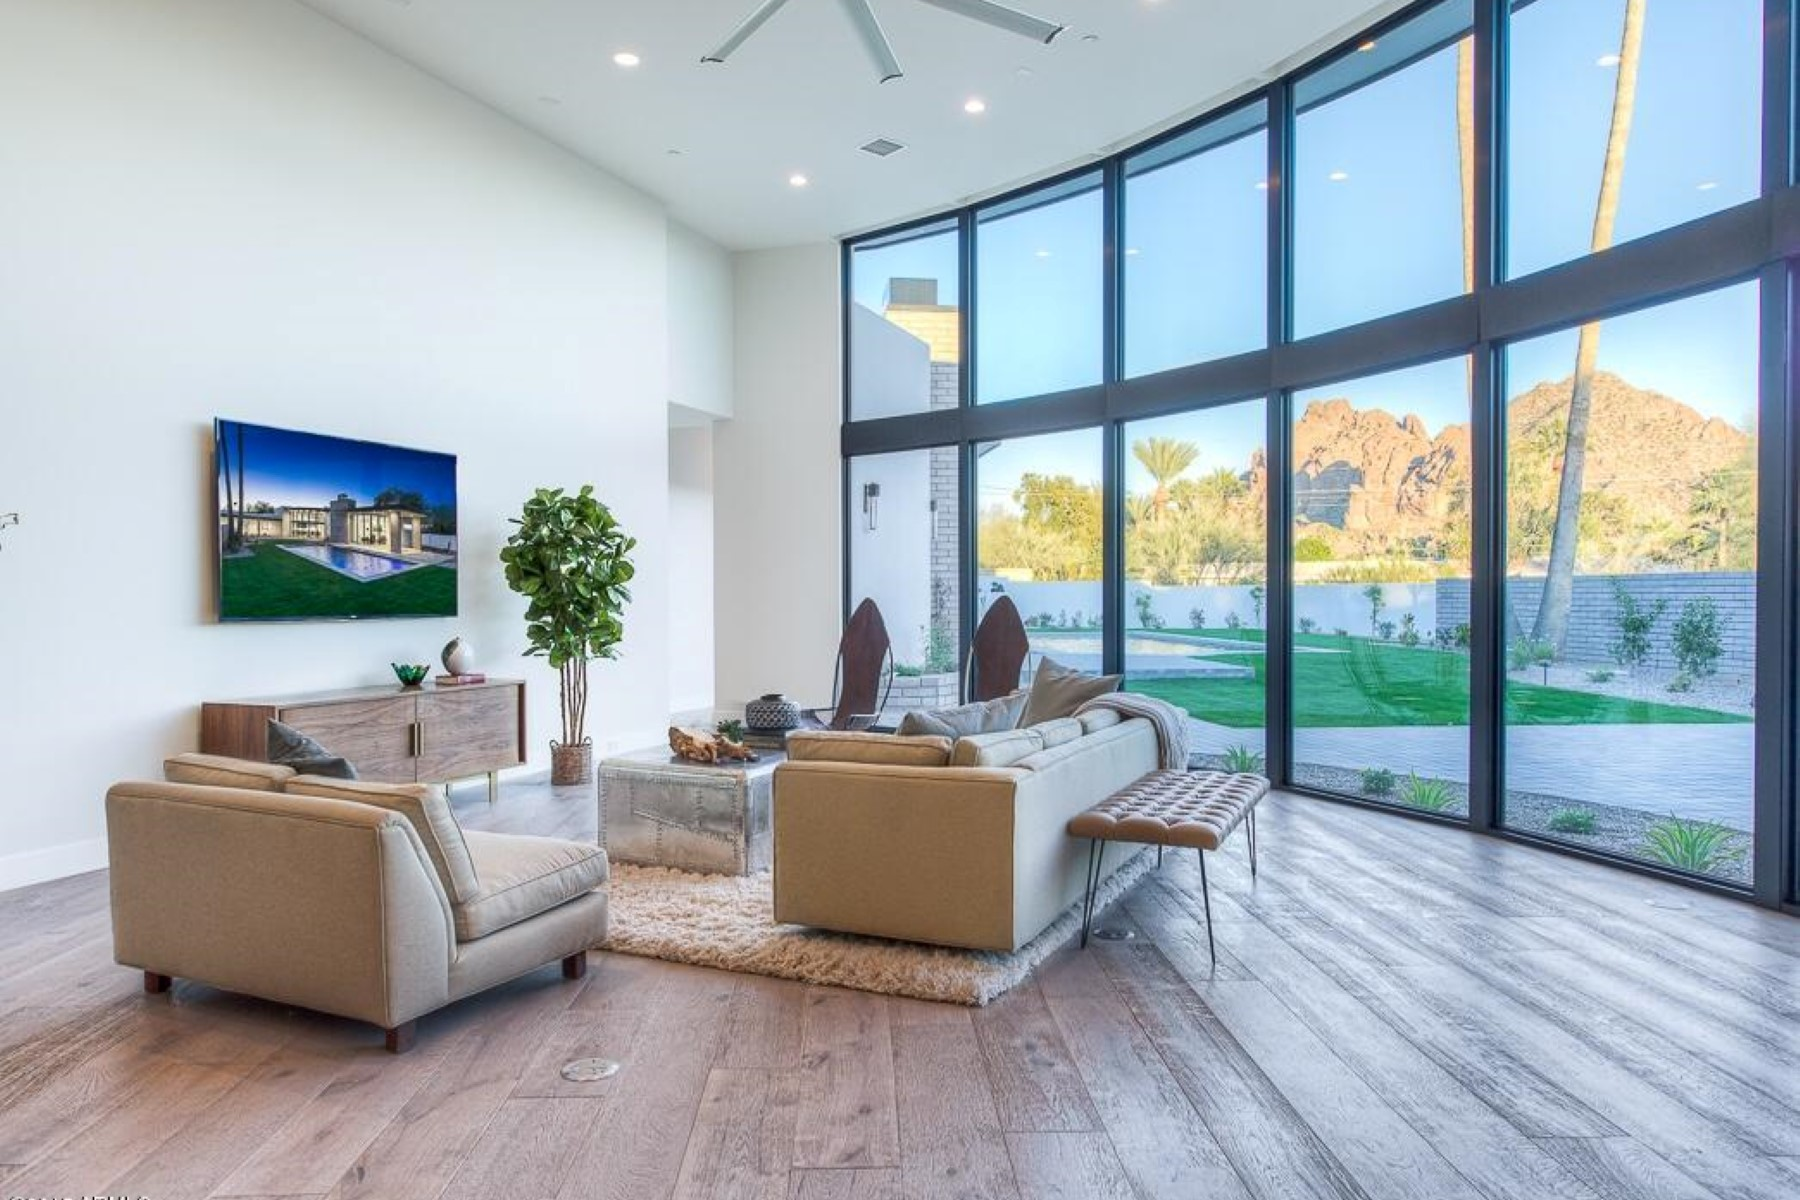 Single Family Home for Sale at Stunning Modern Masterpiece was flawlessly crafted and designed by Two Hawks. 5430 N 41ST ST Phoenix, Arizona 85018 United States